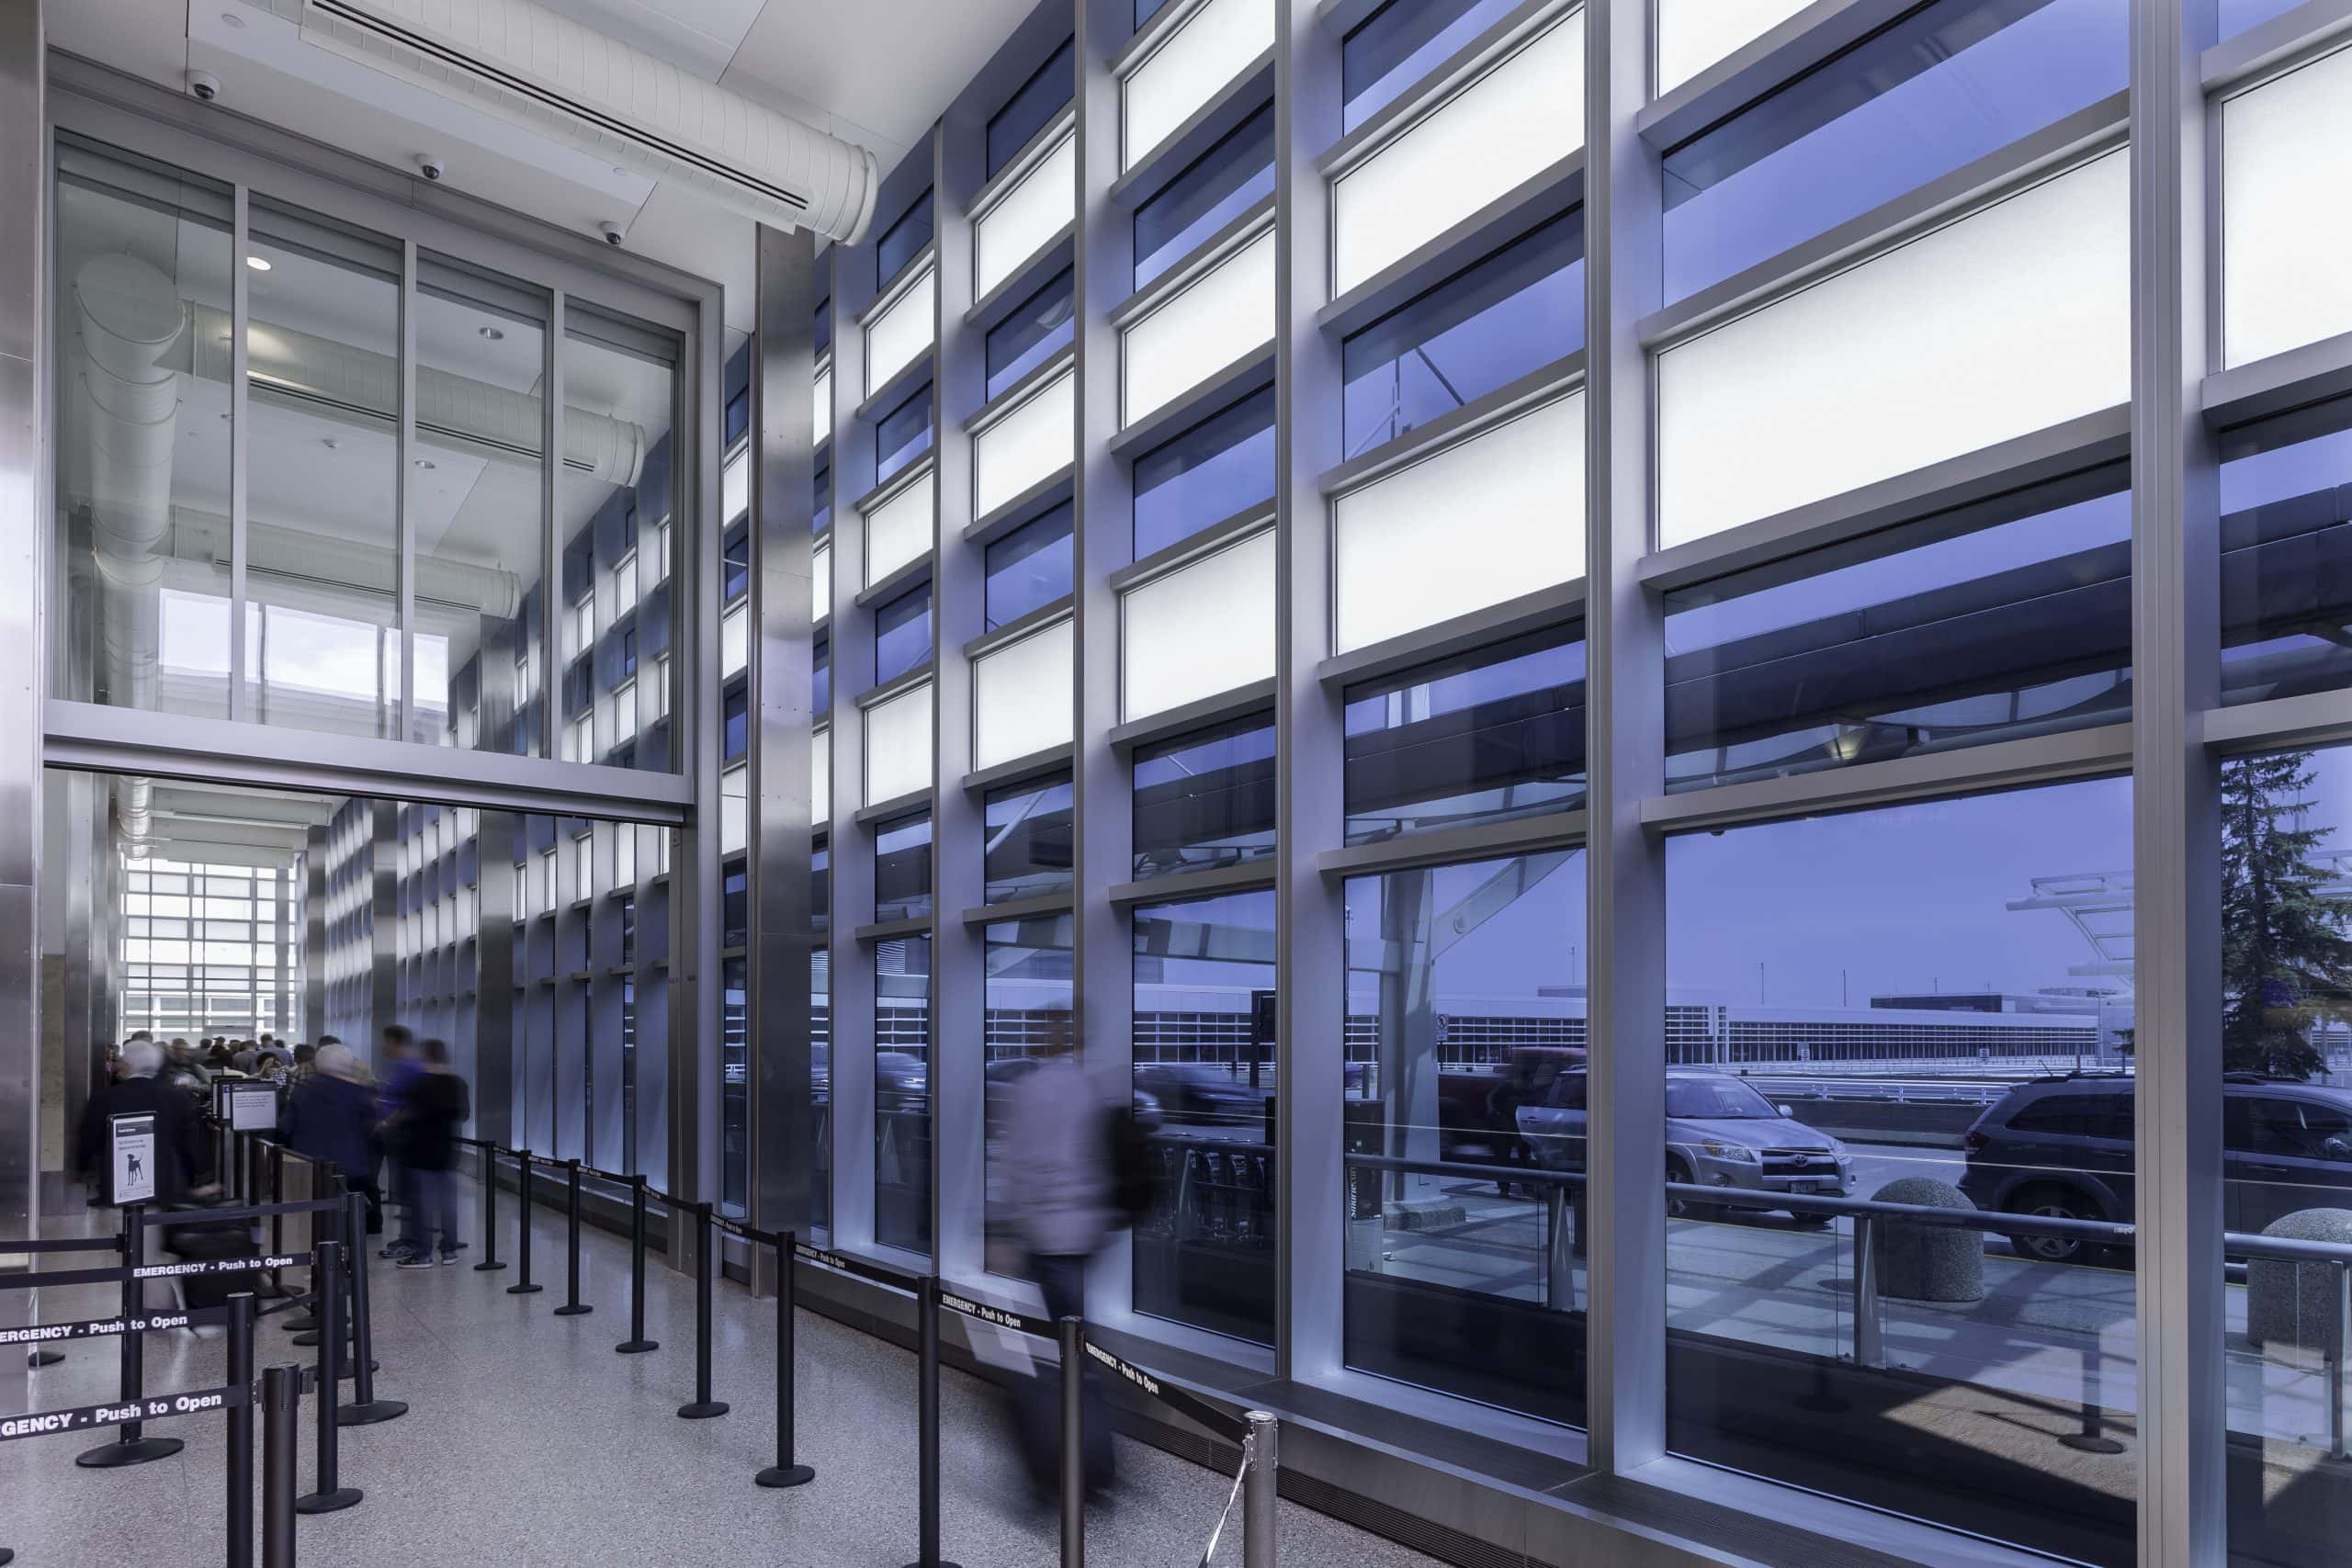 electrochromic glass being used at st paul airport terminal in Minneapolis